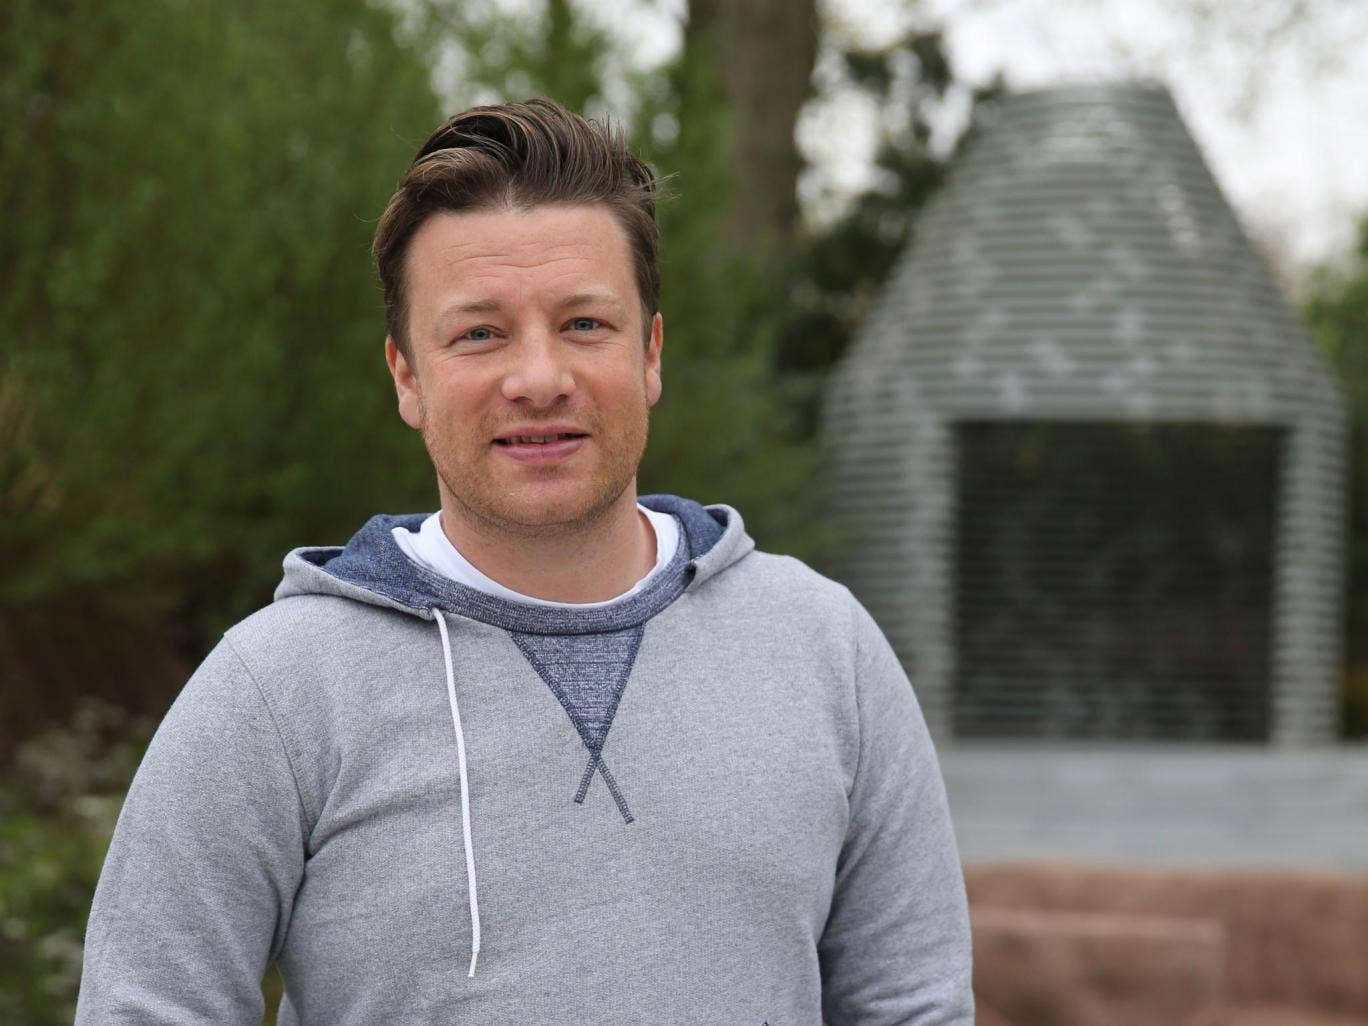 jamie oliver s 7 million london home broken into by thieves people news the independent. Black Bedroom Furniture Sets. Home Design Ideas